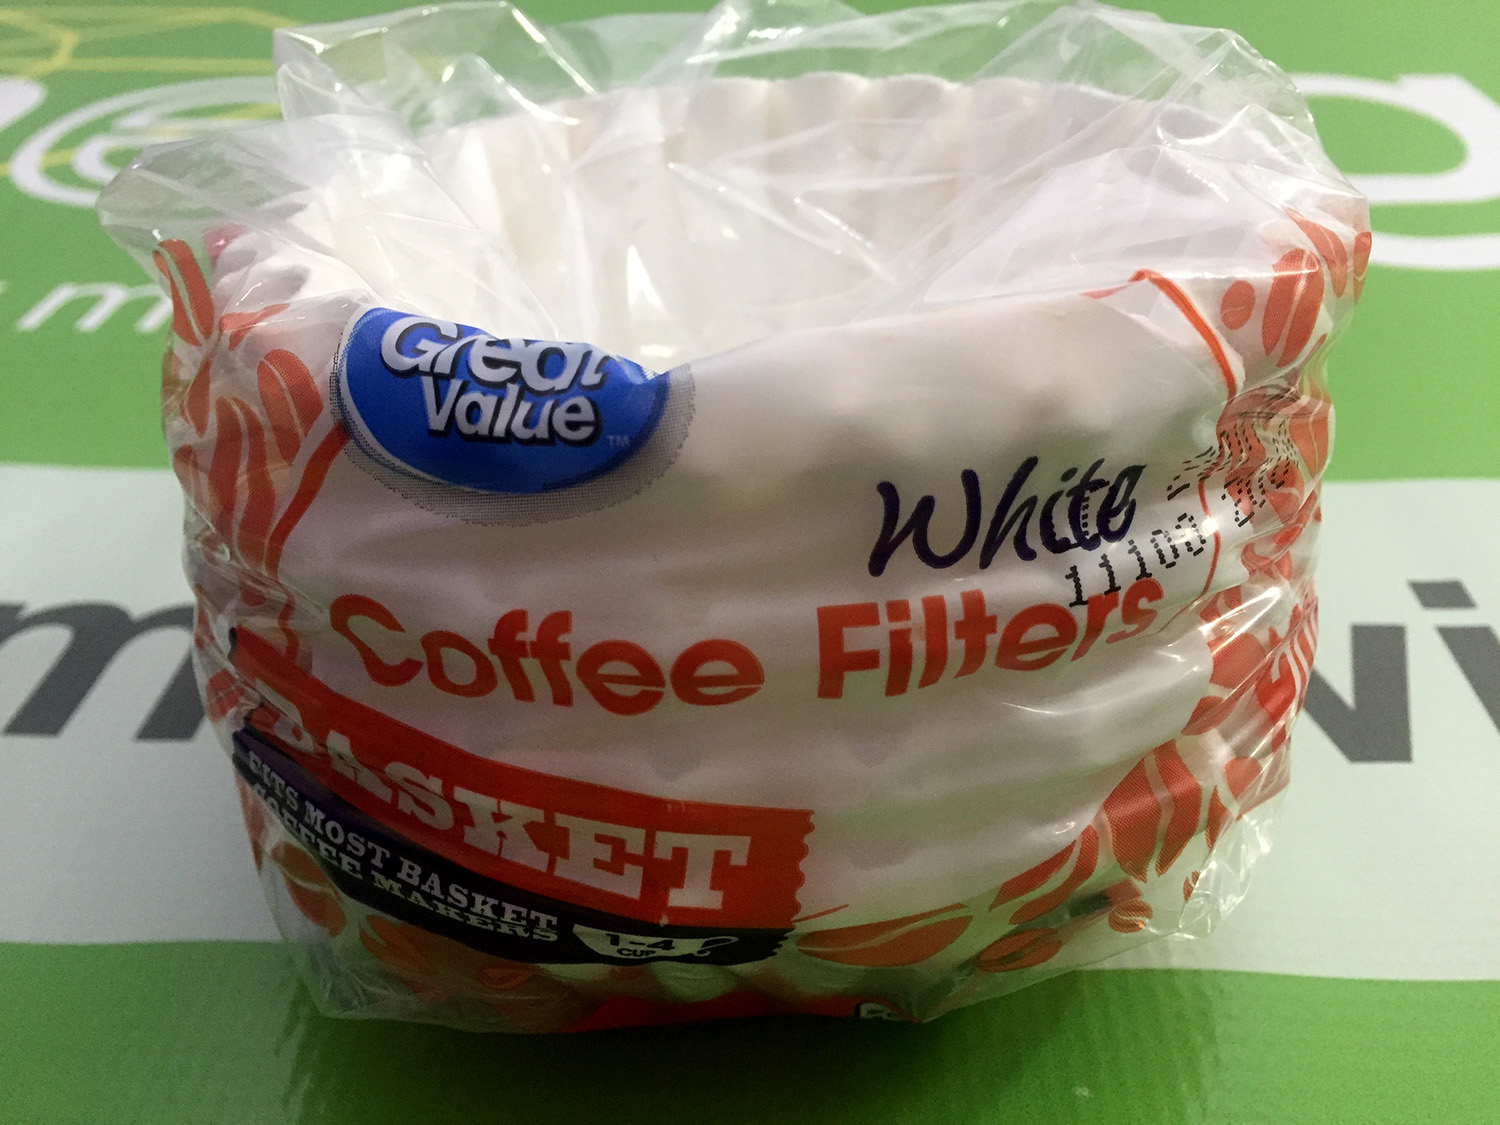 Store Brand White Basket Coffee Filters 1-4 Cup Size (200 Count)